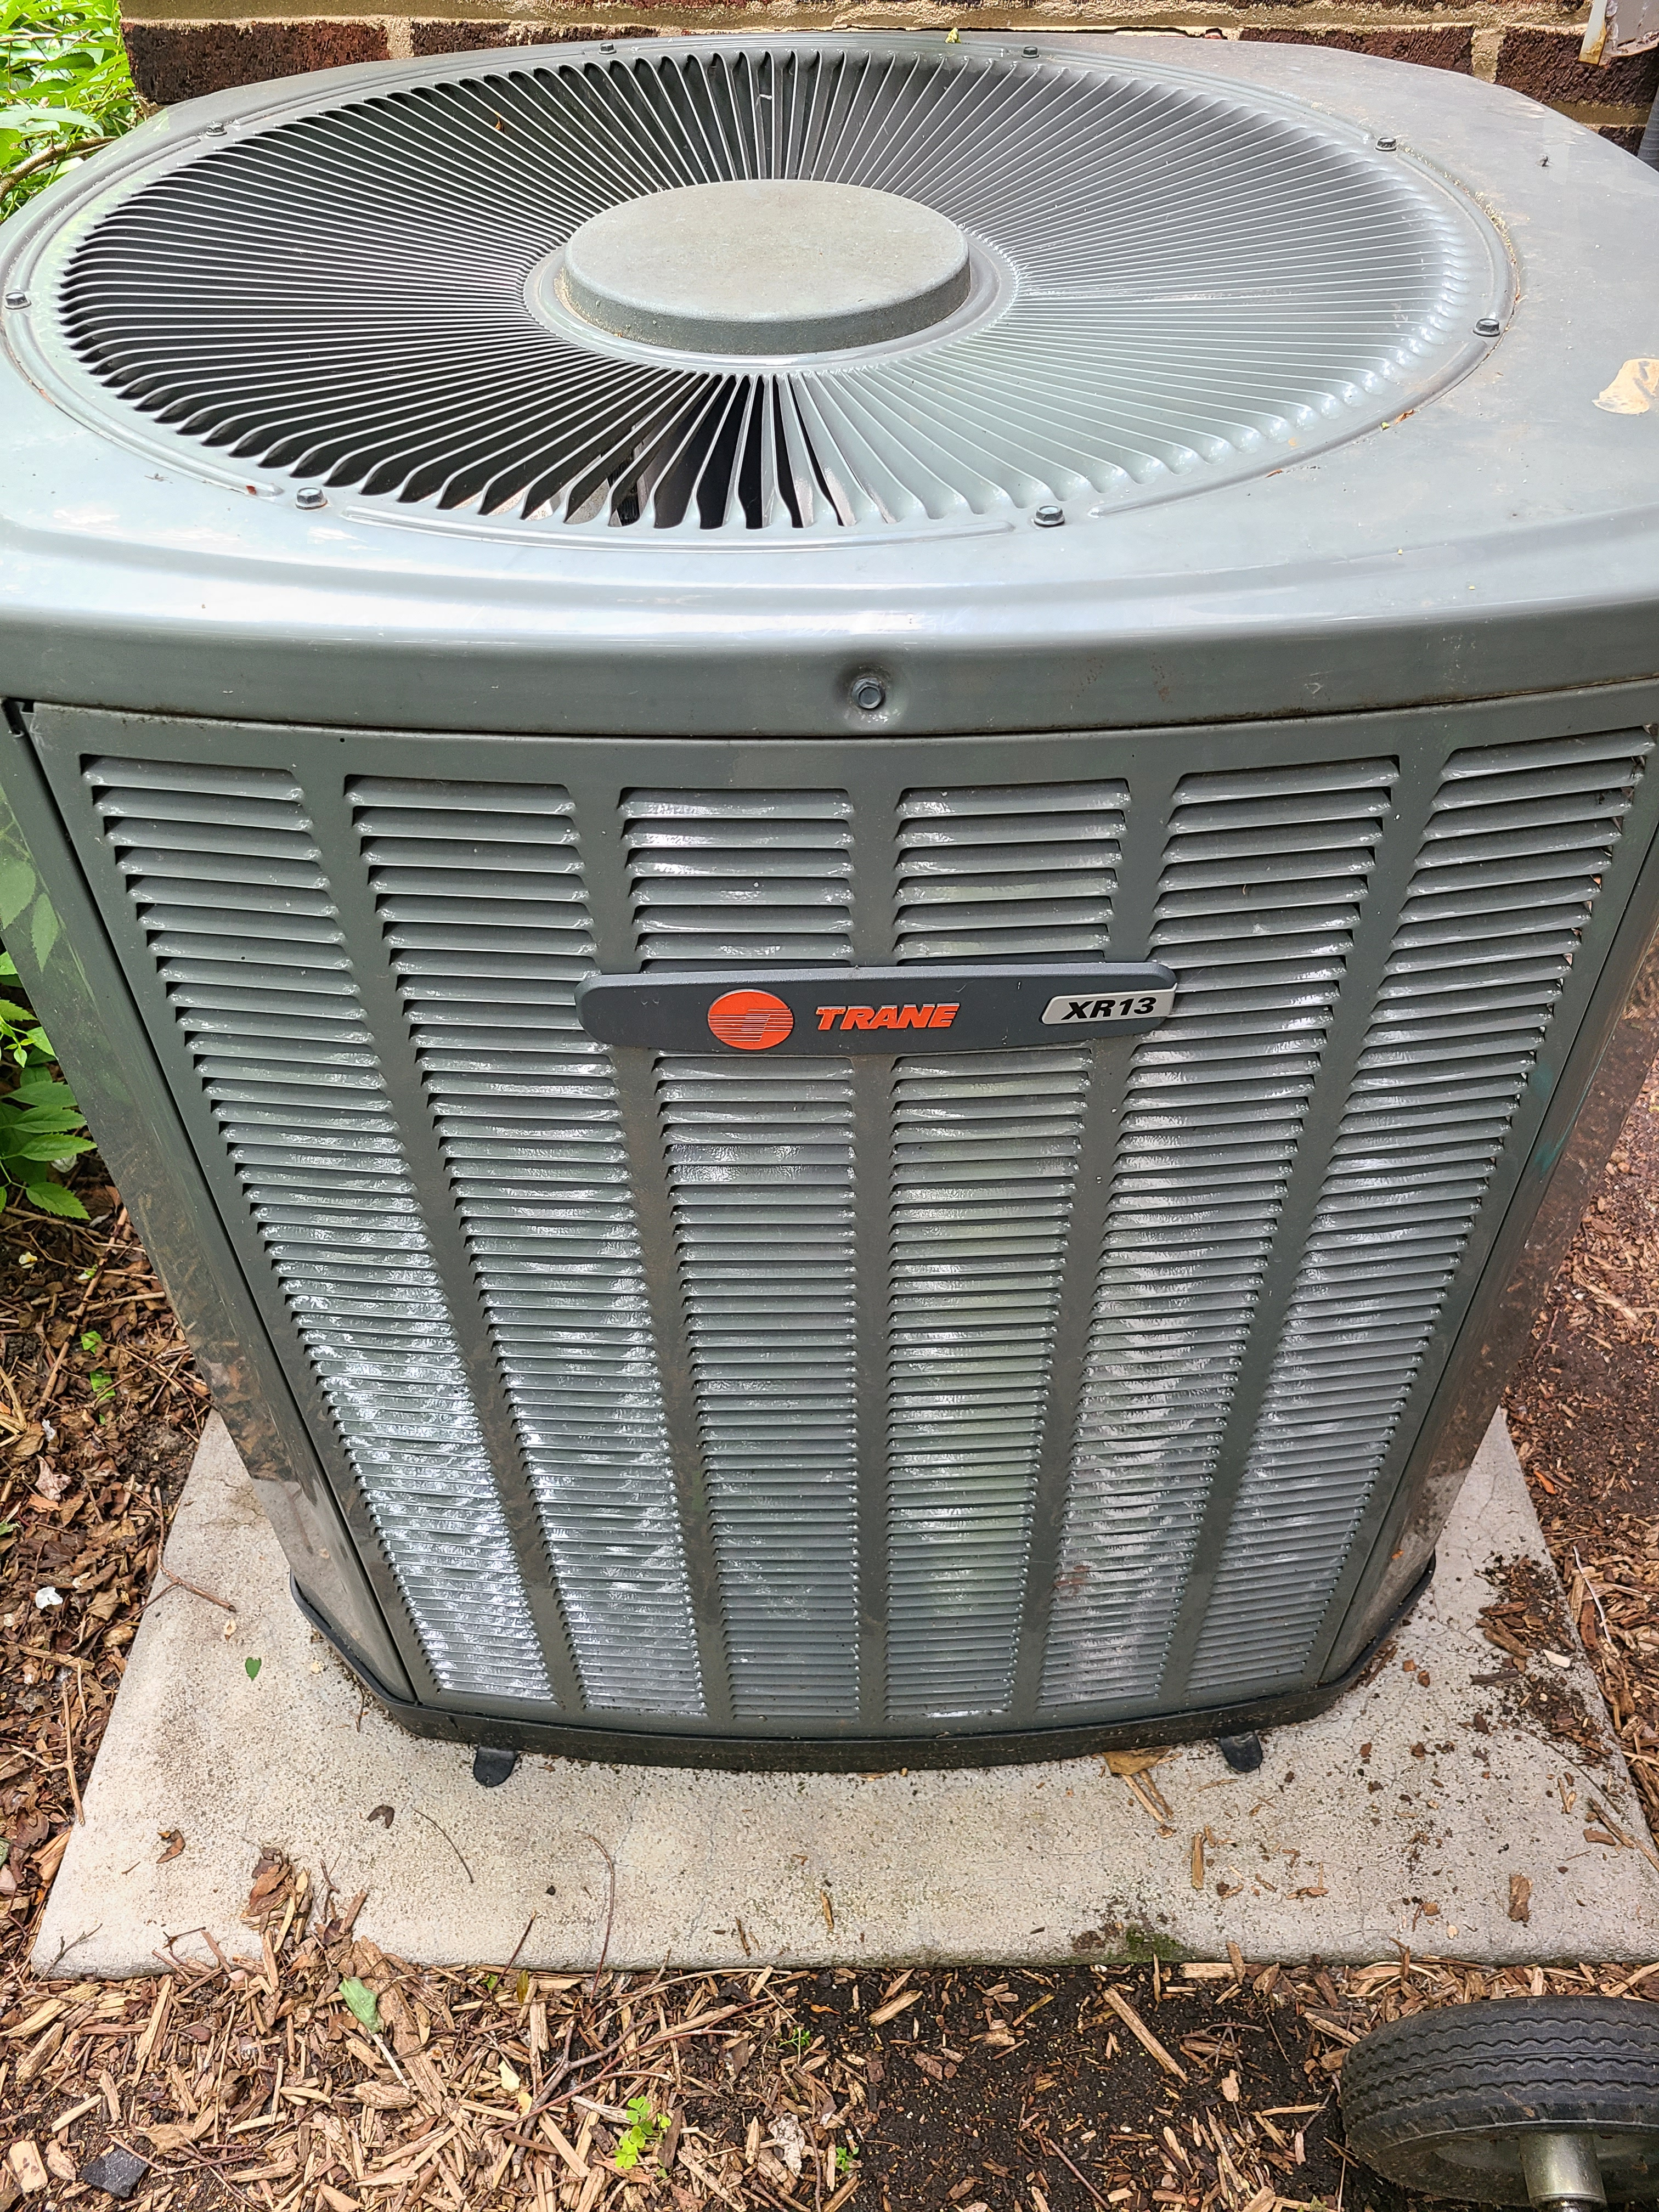 Trane air conditioning maintenance for Comfort Club member.